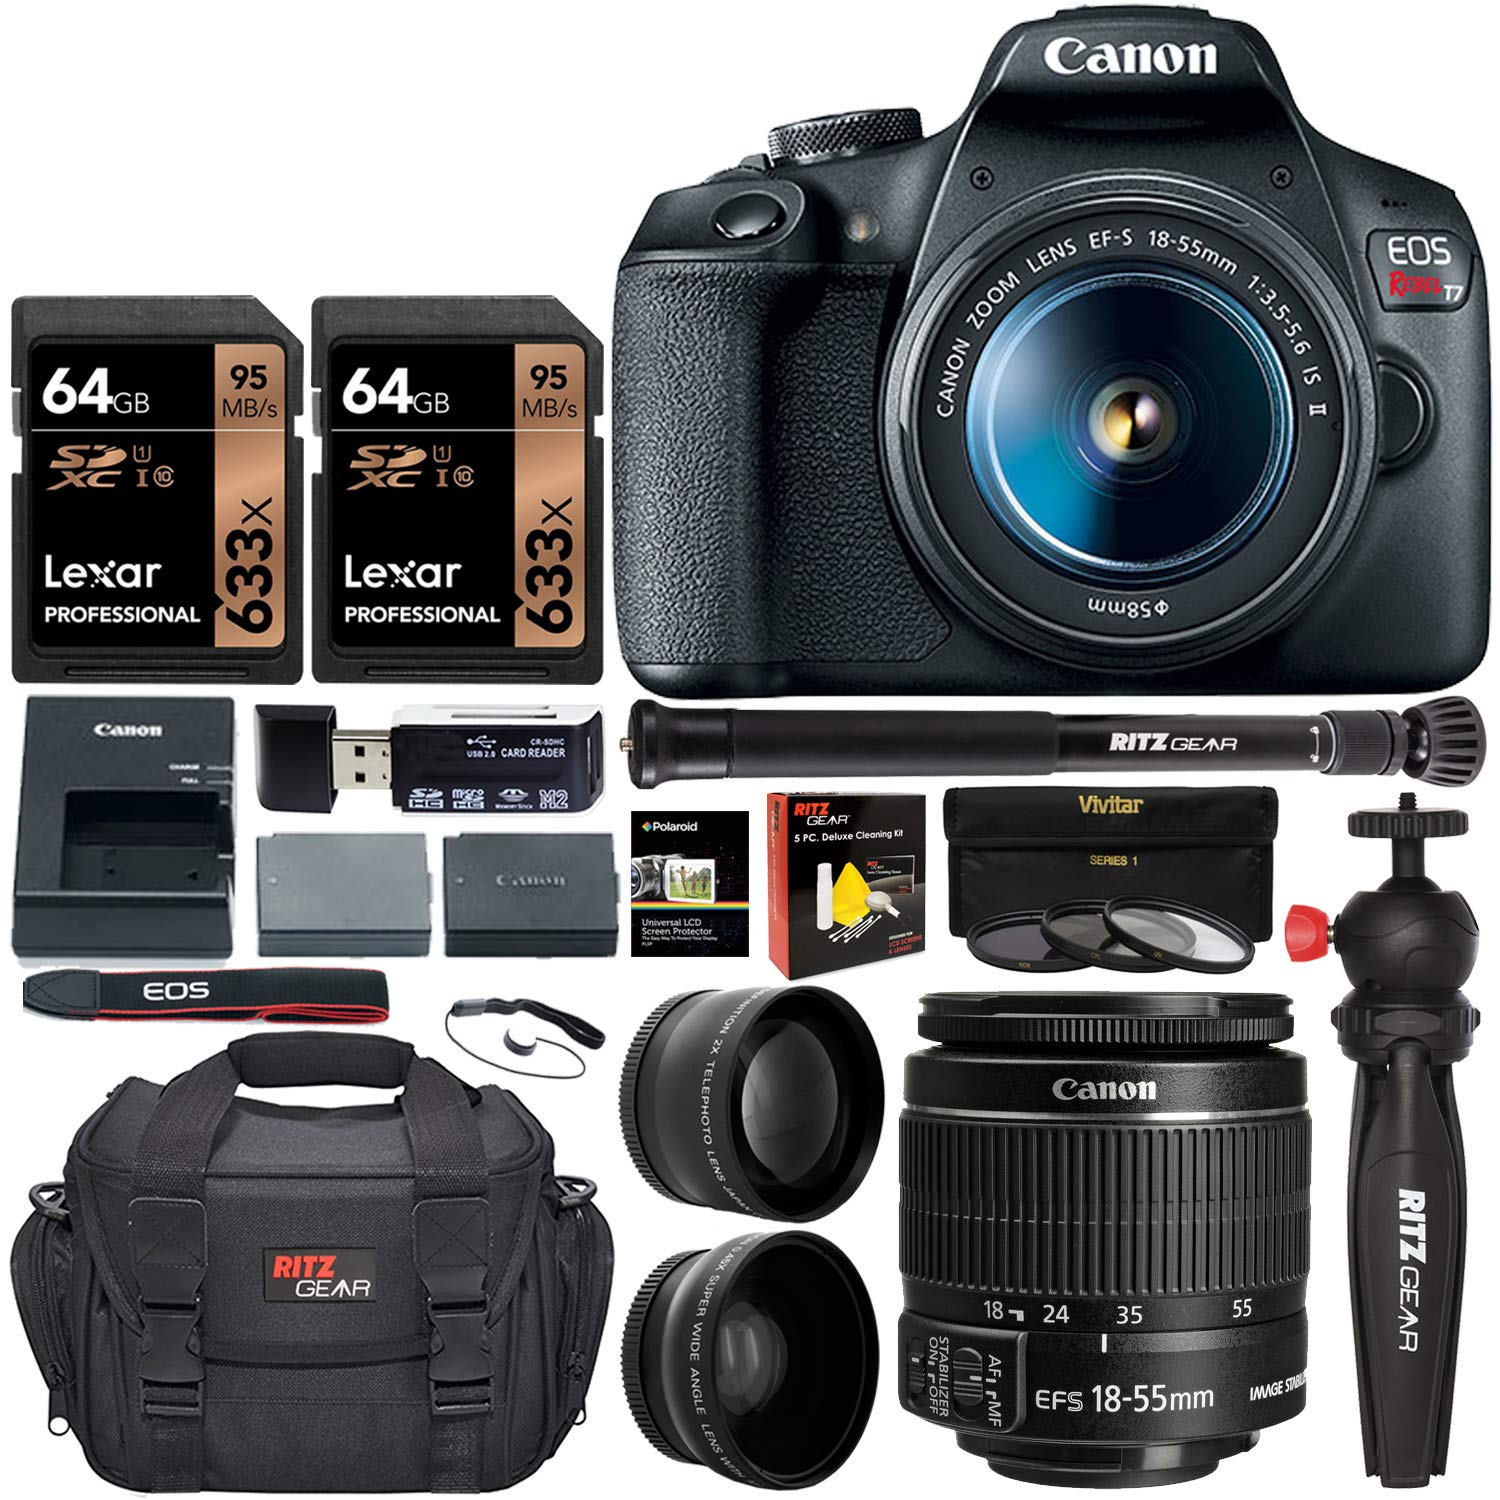 canon-eos-rebel-t7-dslr-camera-travel-bundle-with-58mm-2x-professional-telephoto-58mm-wide-angle-lenses-lexar-128gb-compact-monopod-table-tripod-filter-kit-uvcpl-nd8-camera-bag